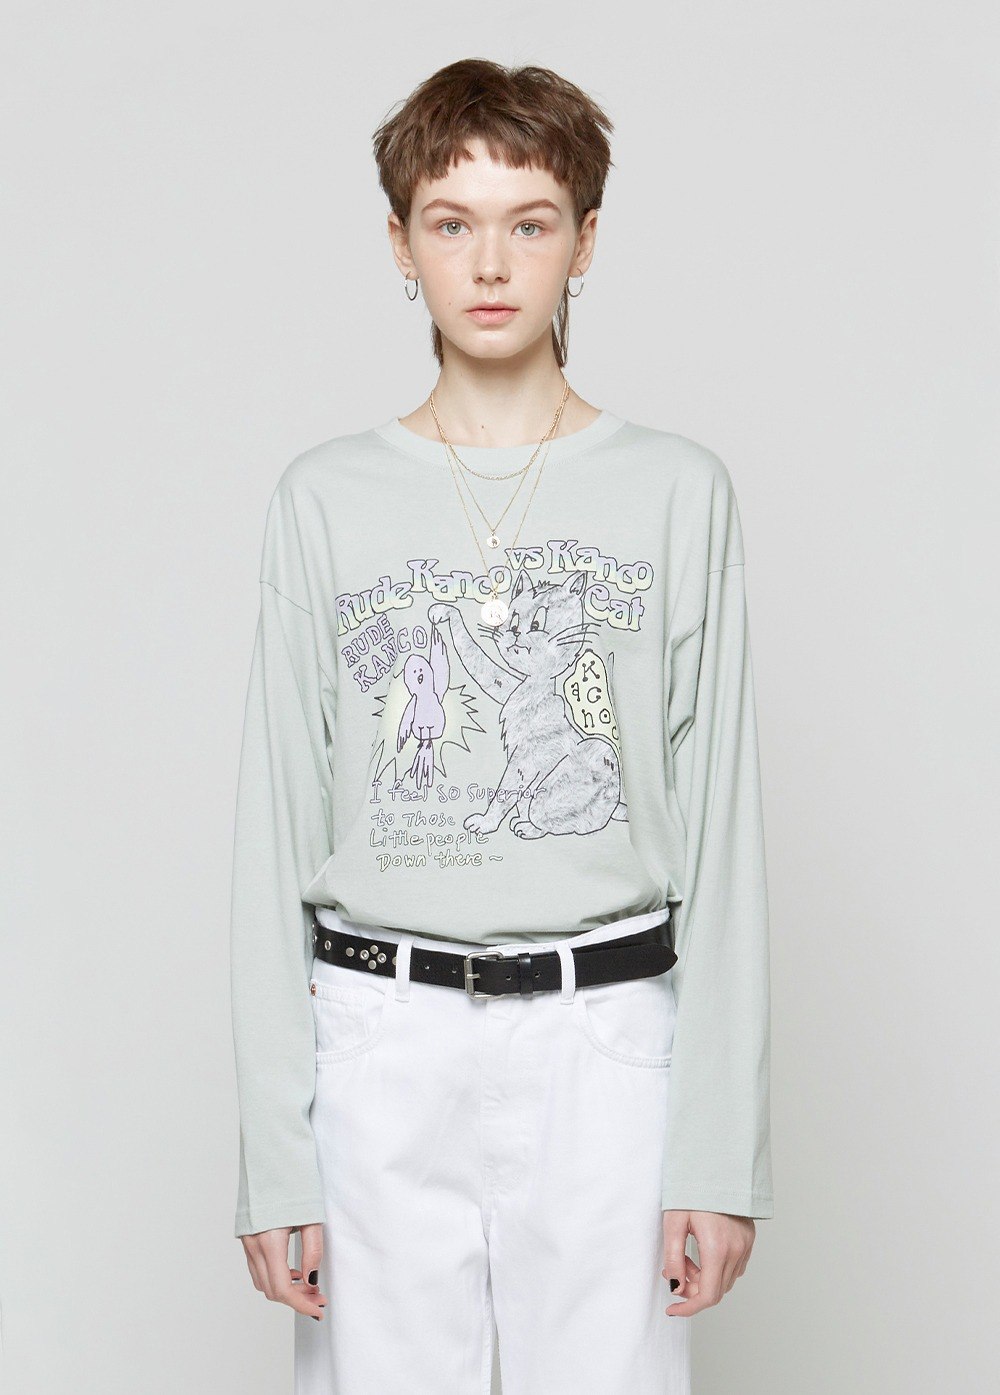 KANCO vs CAT LONG SLEEVE TEE mint